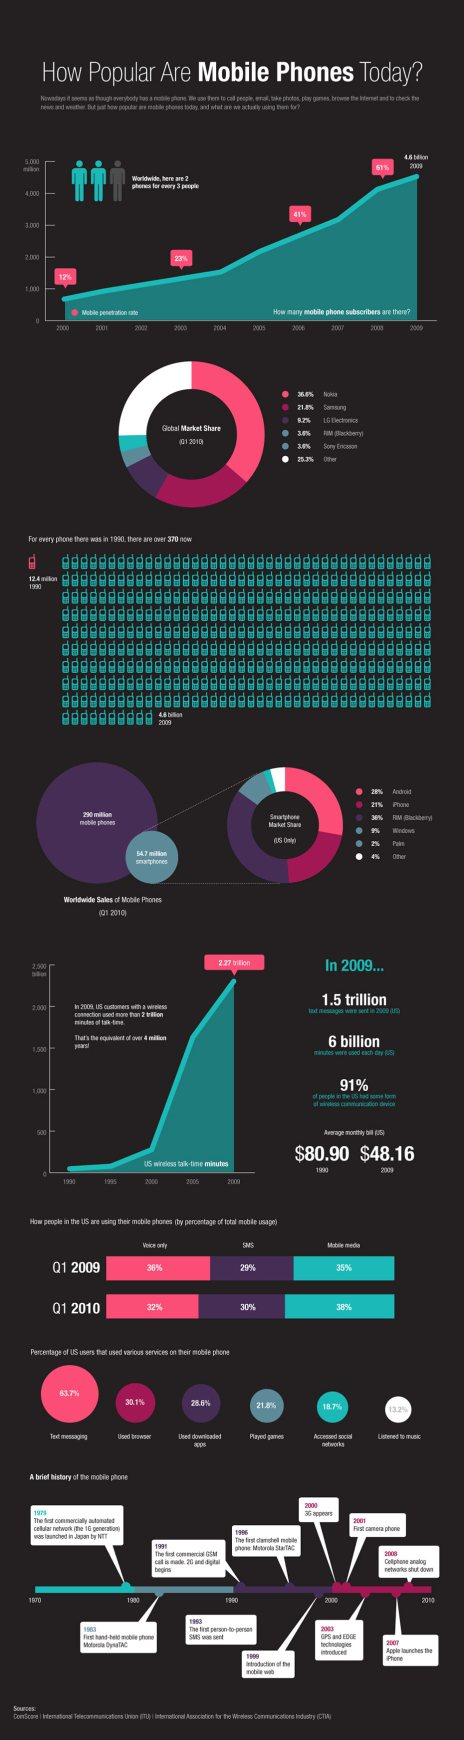 mobile-phones-infographic